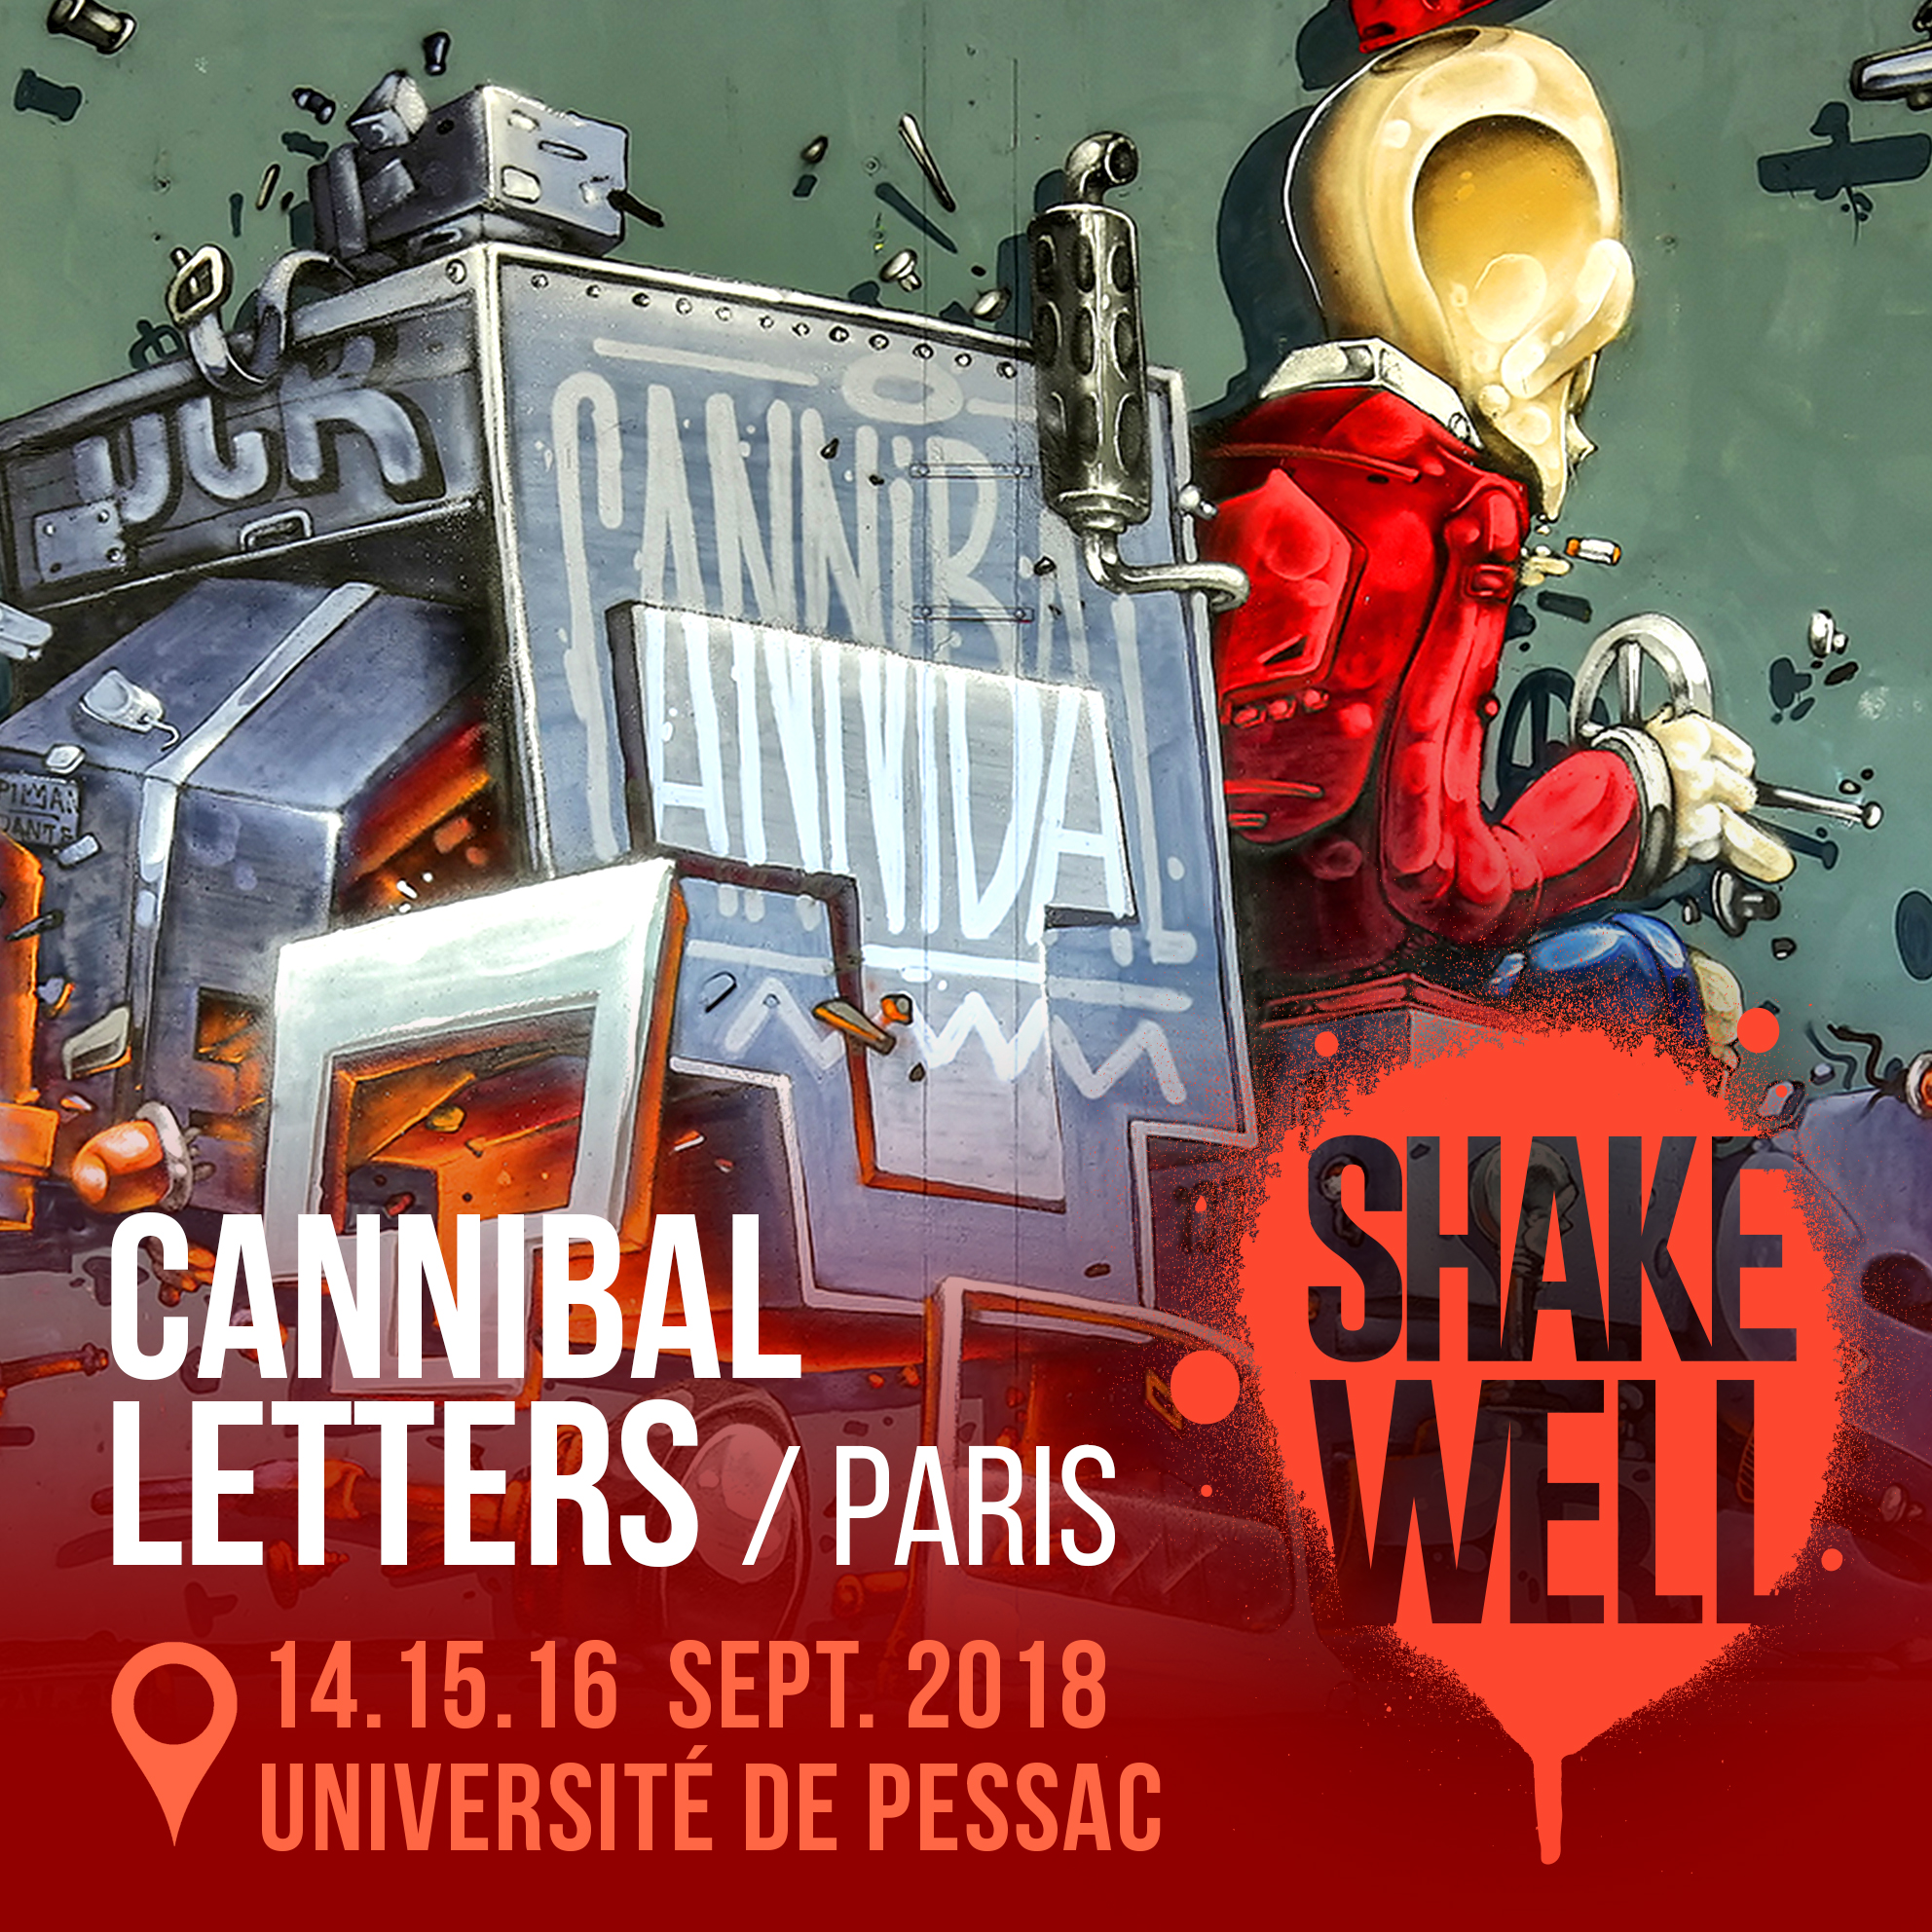 Cannibal-letters